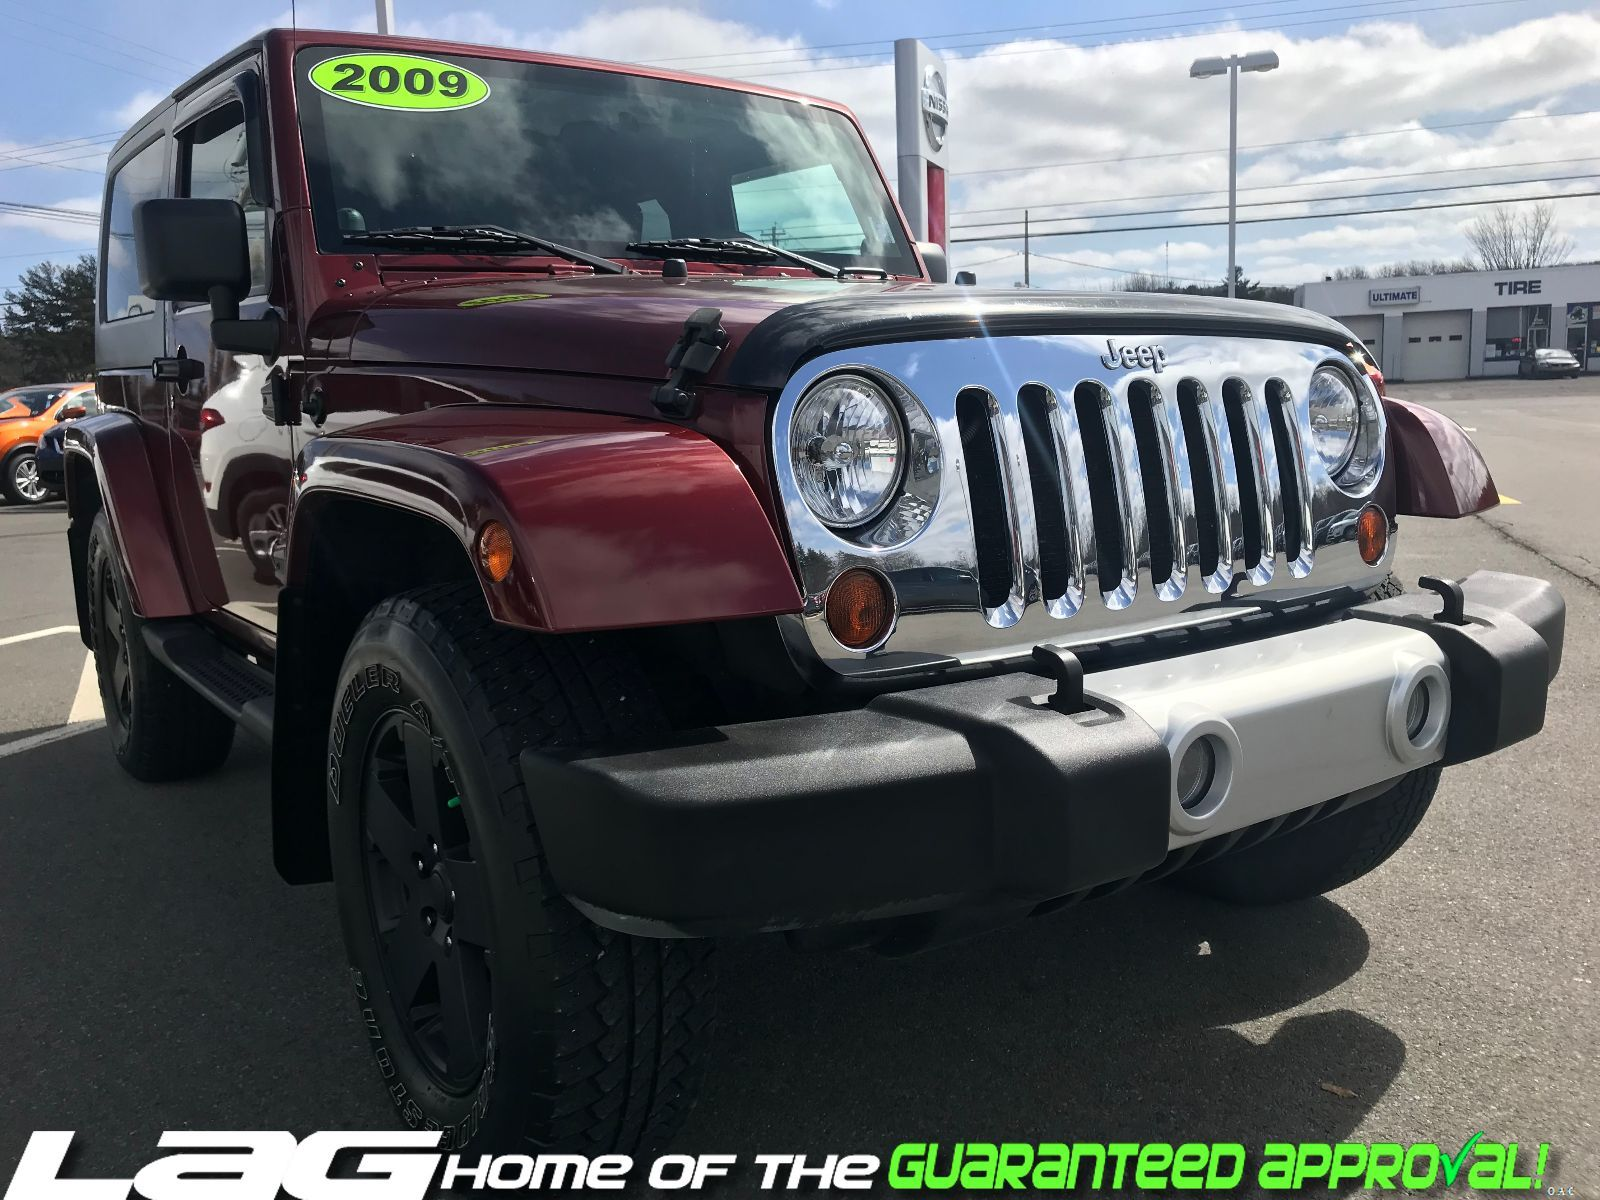 902 Auto Sales Used 2009 Jeep Wrangler for sale in Dartmouth